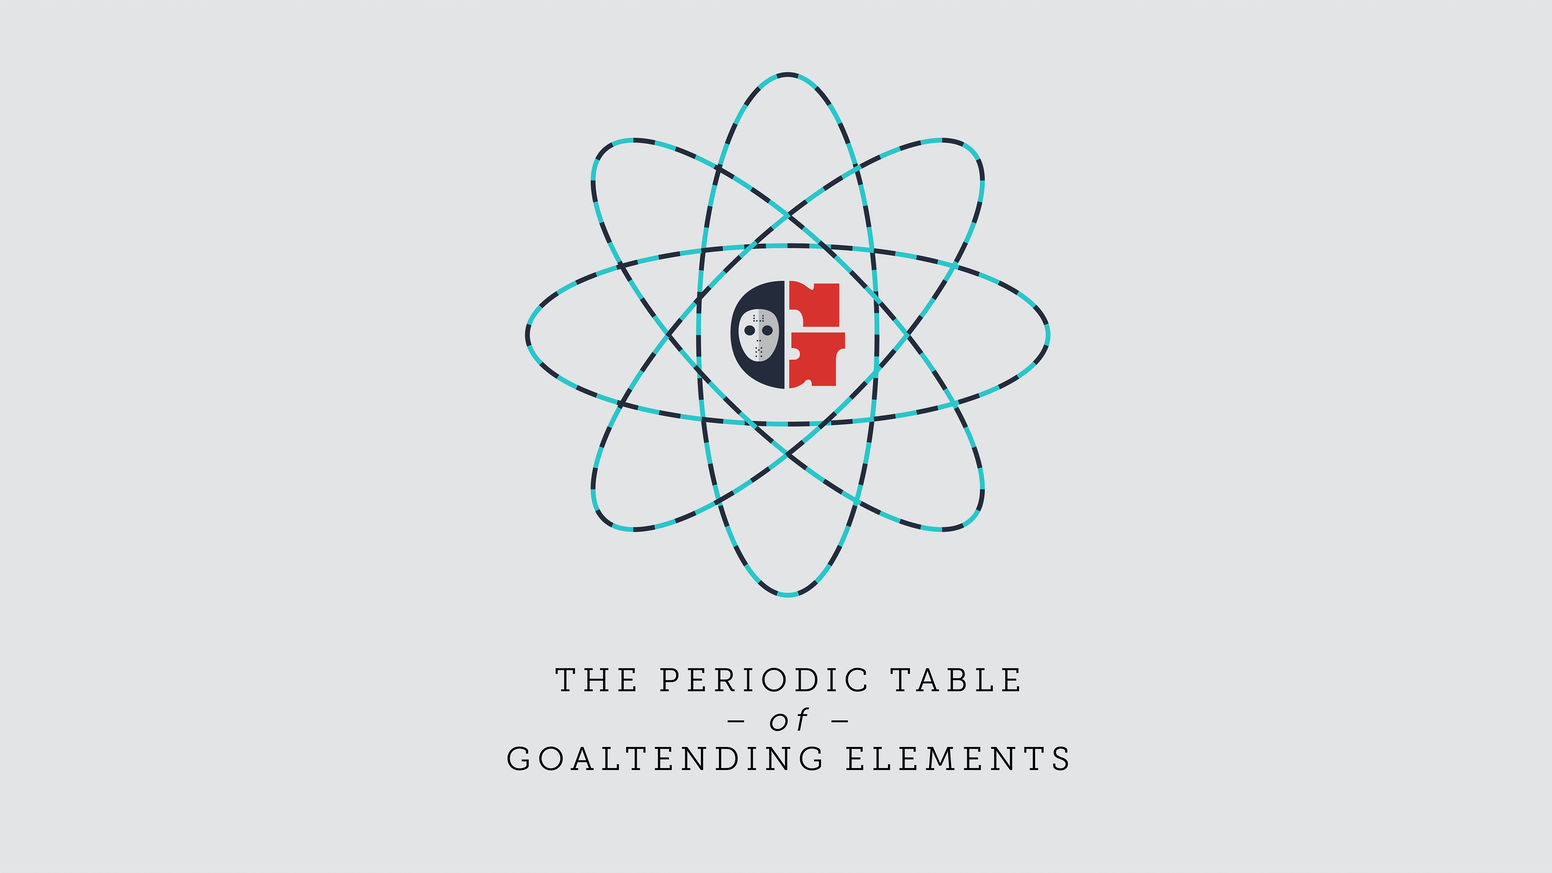 the periodic table of goaltending elements we transformed our creative goaltending infographic into a full color learning book poster